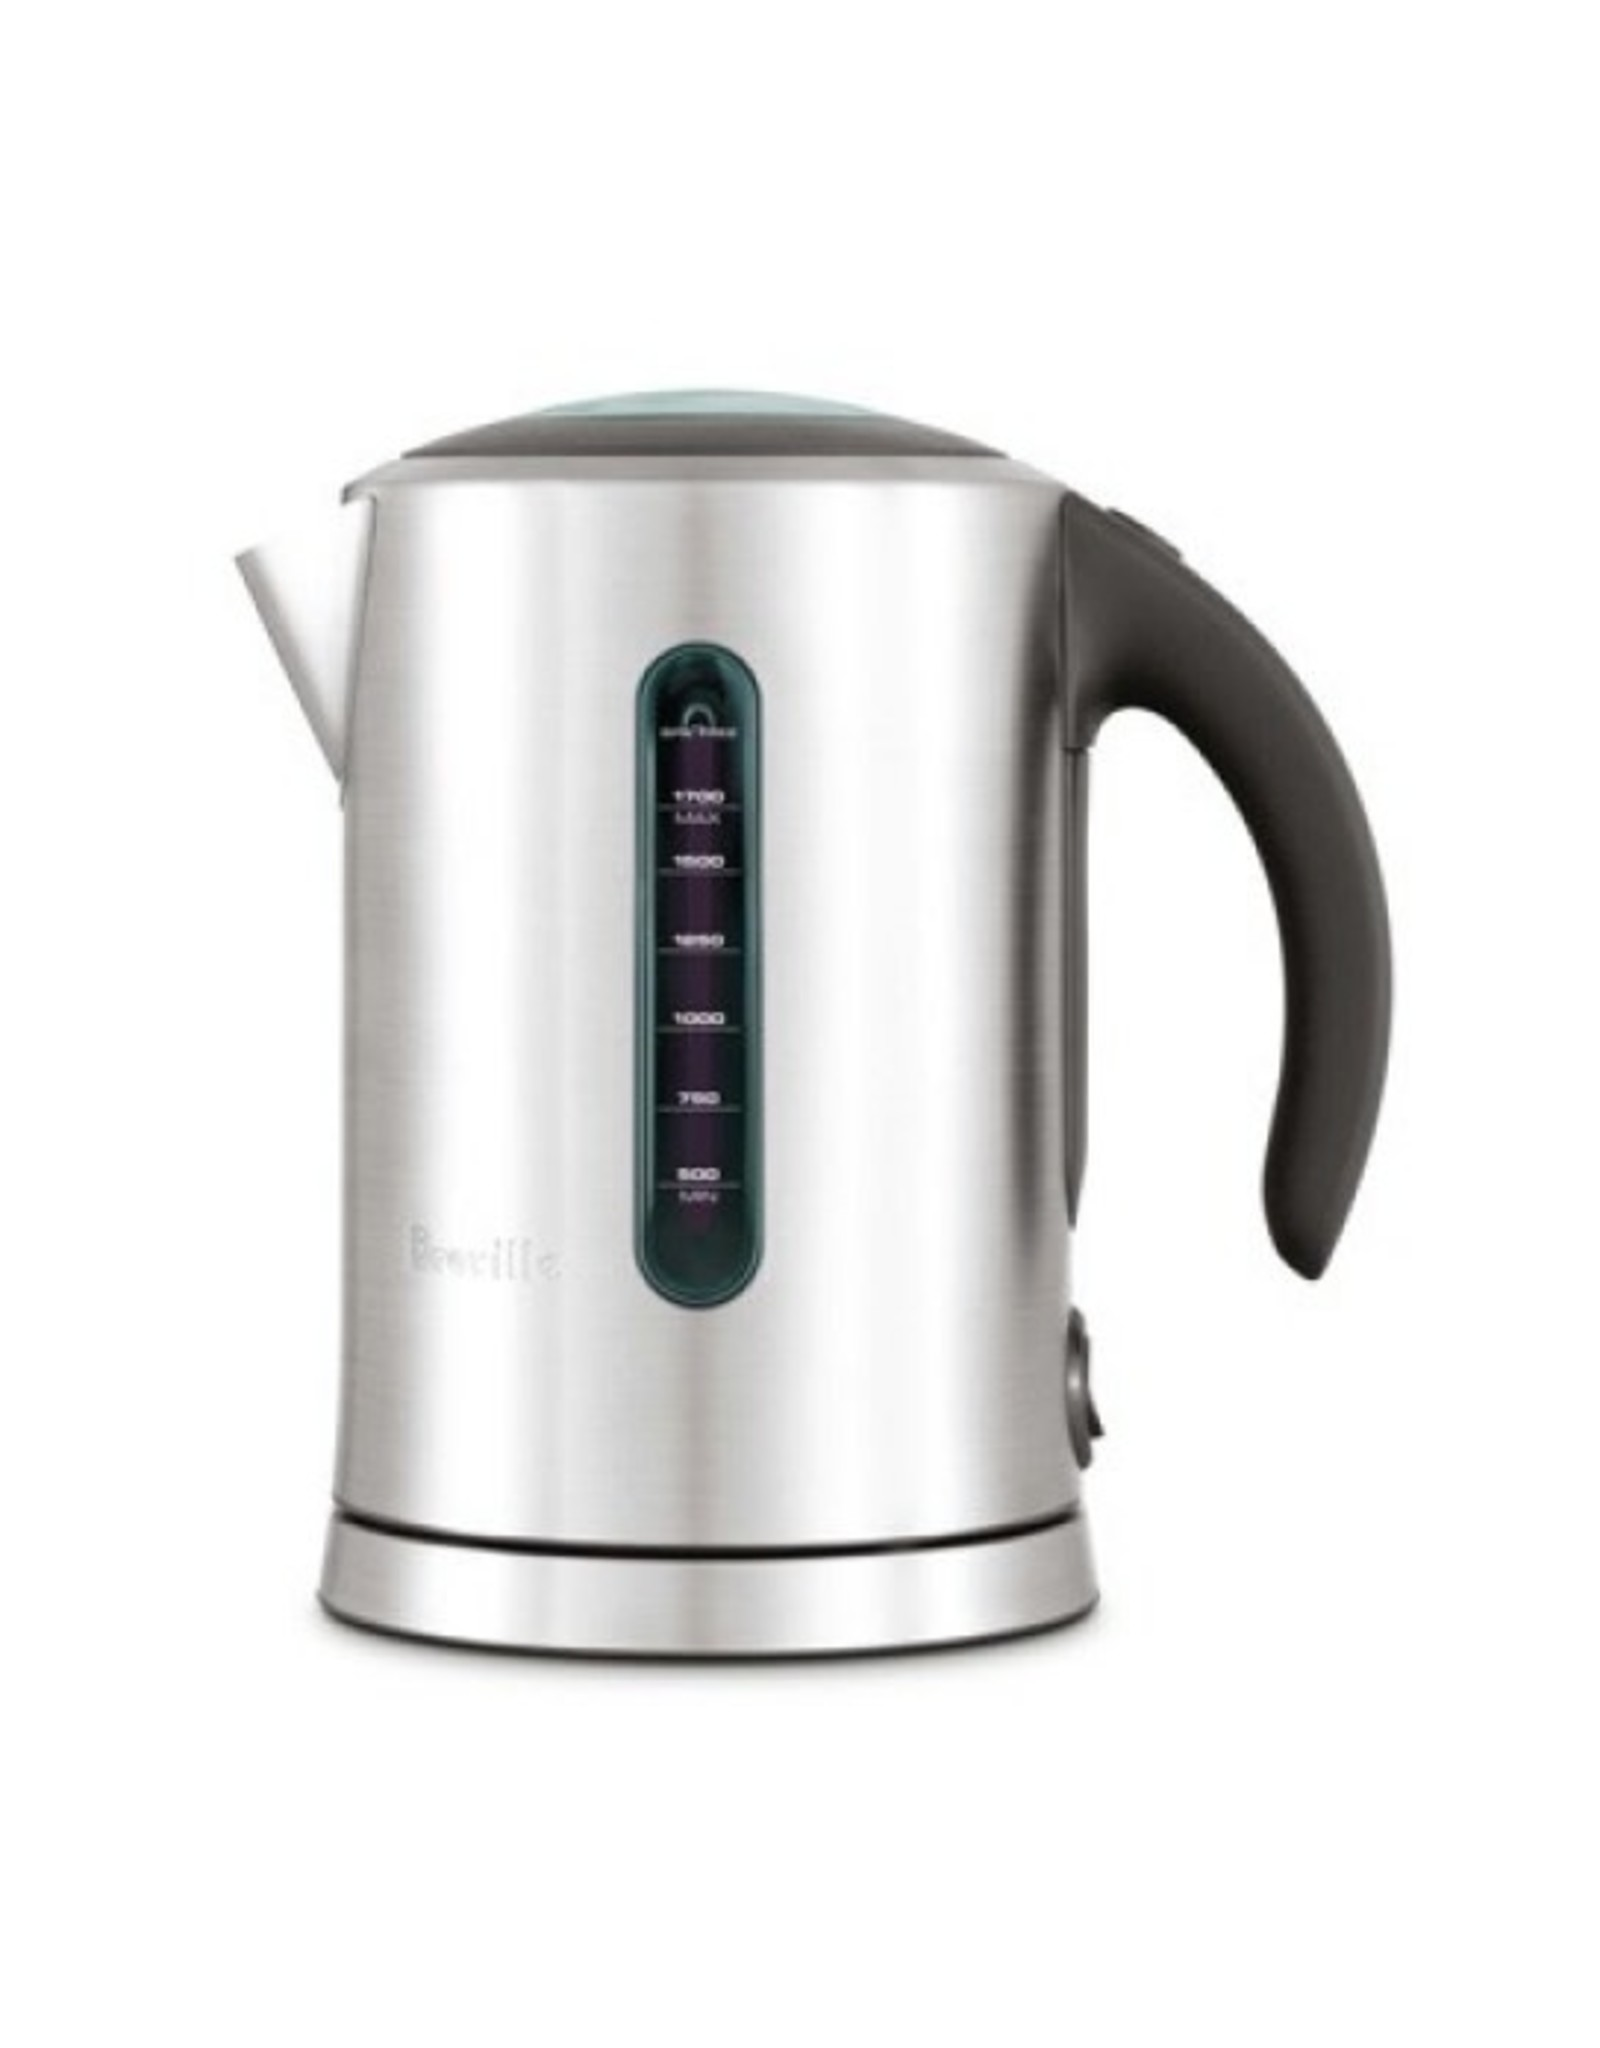 Breville Breville Soft Top Electric Kettle